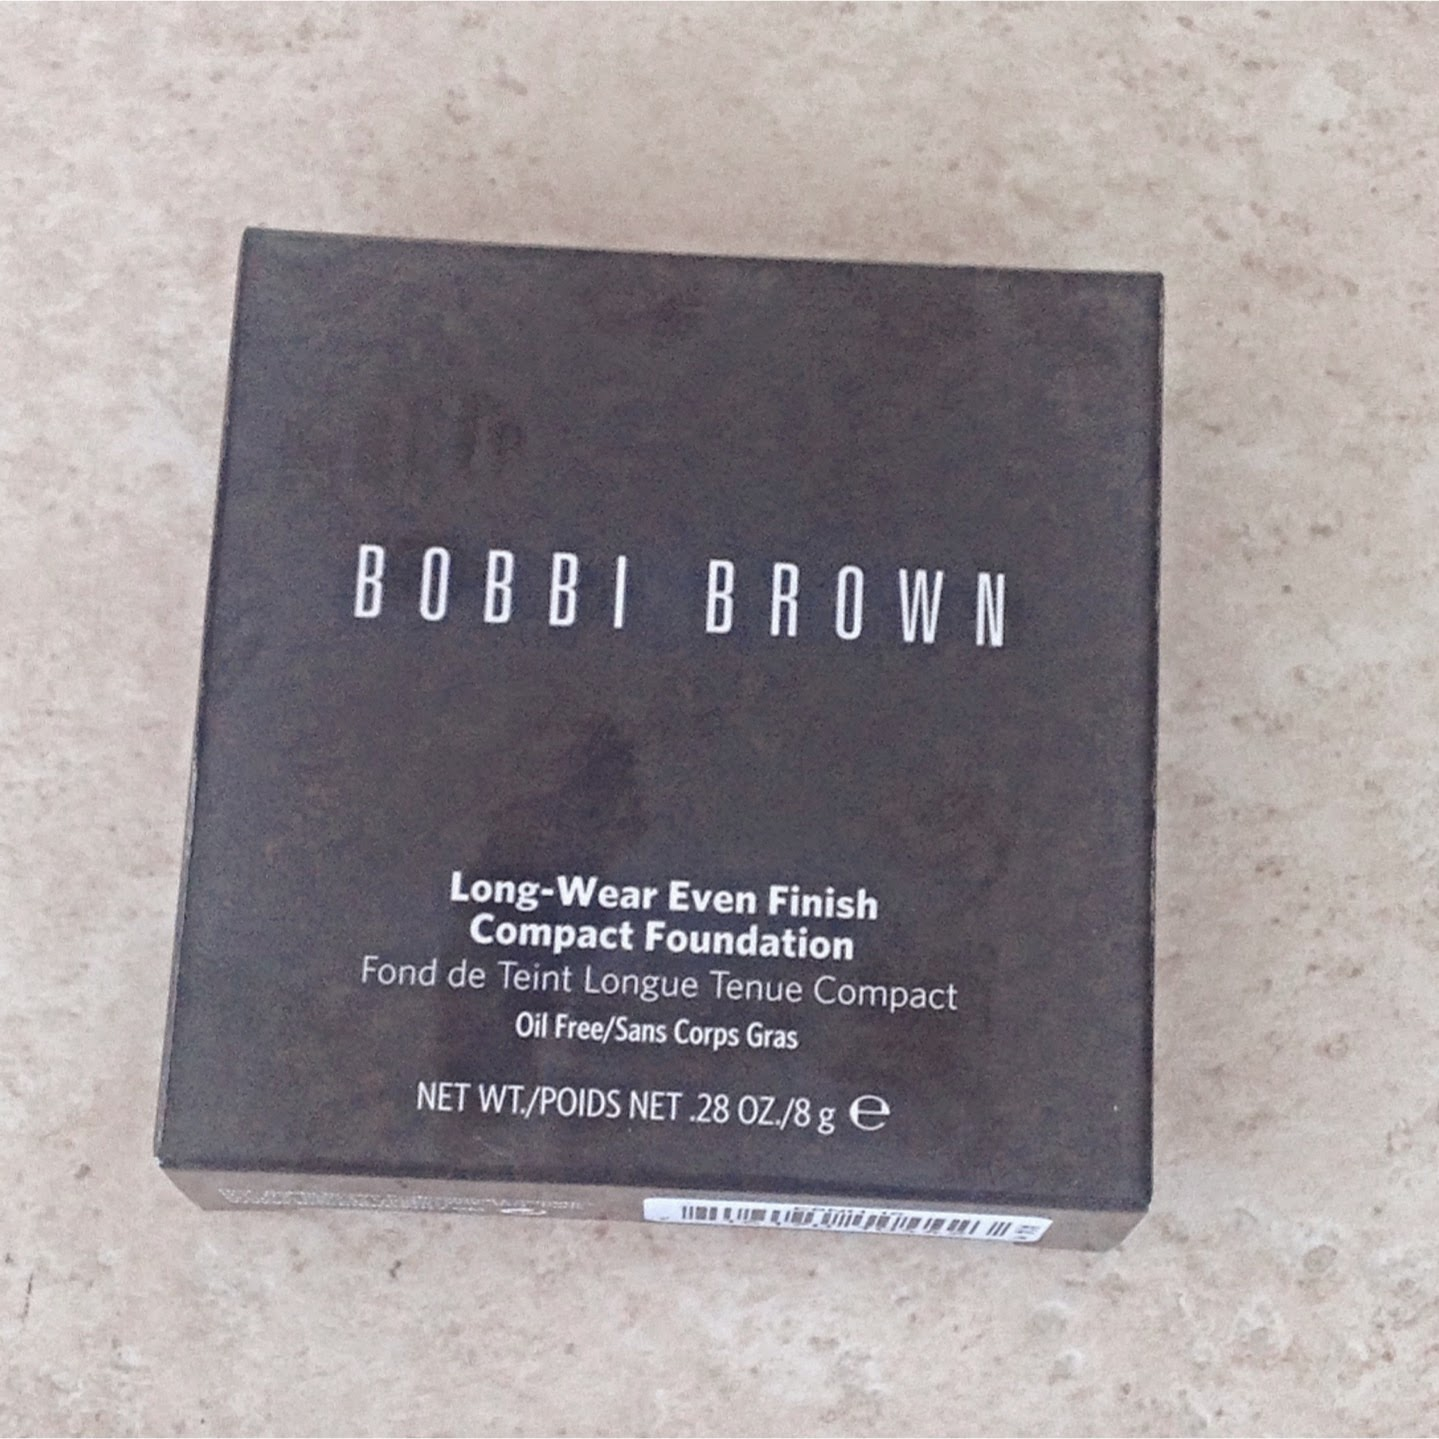 Bobbi Brown Long-Wear Even Finish Compact